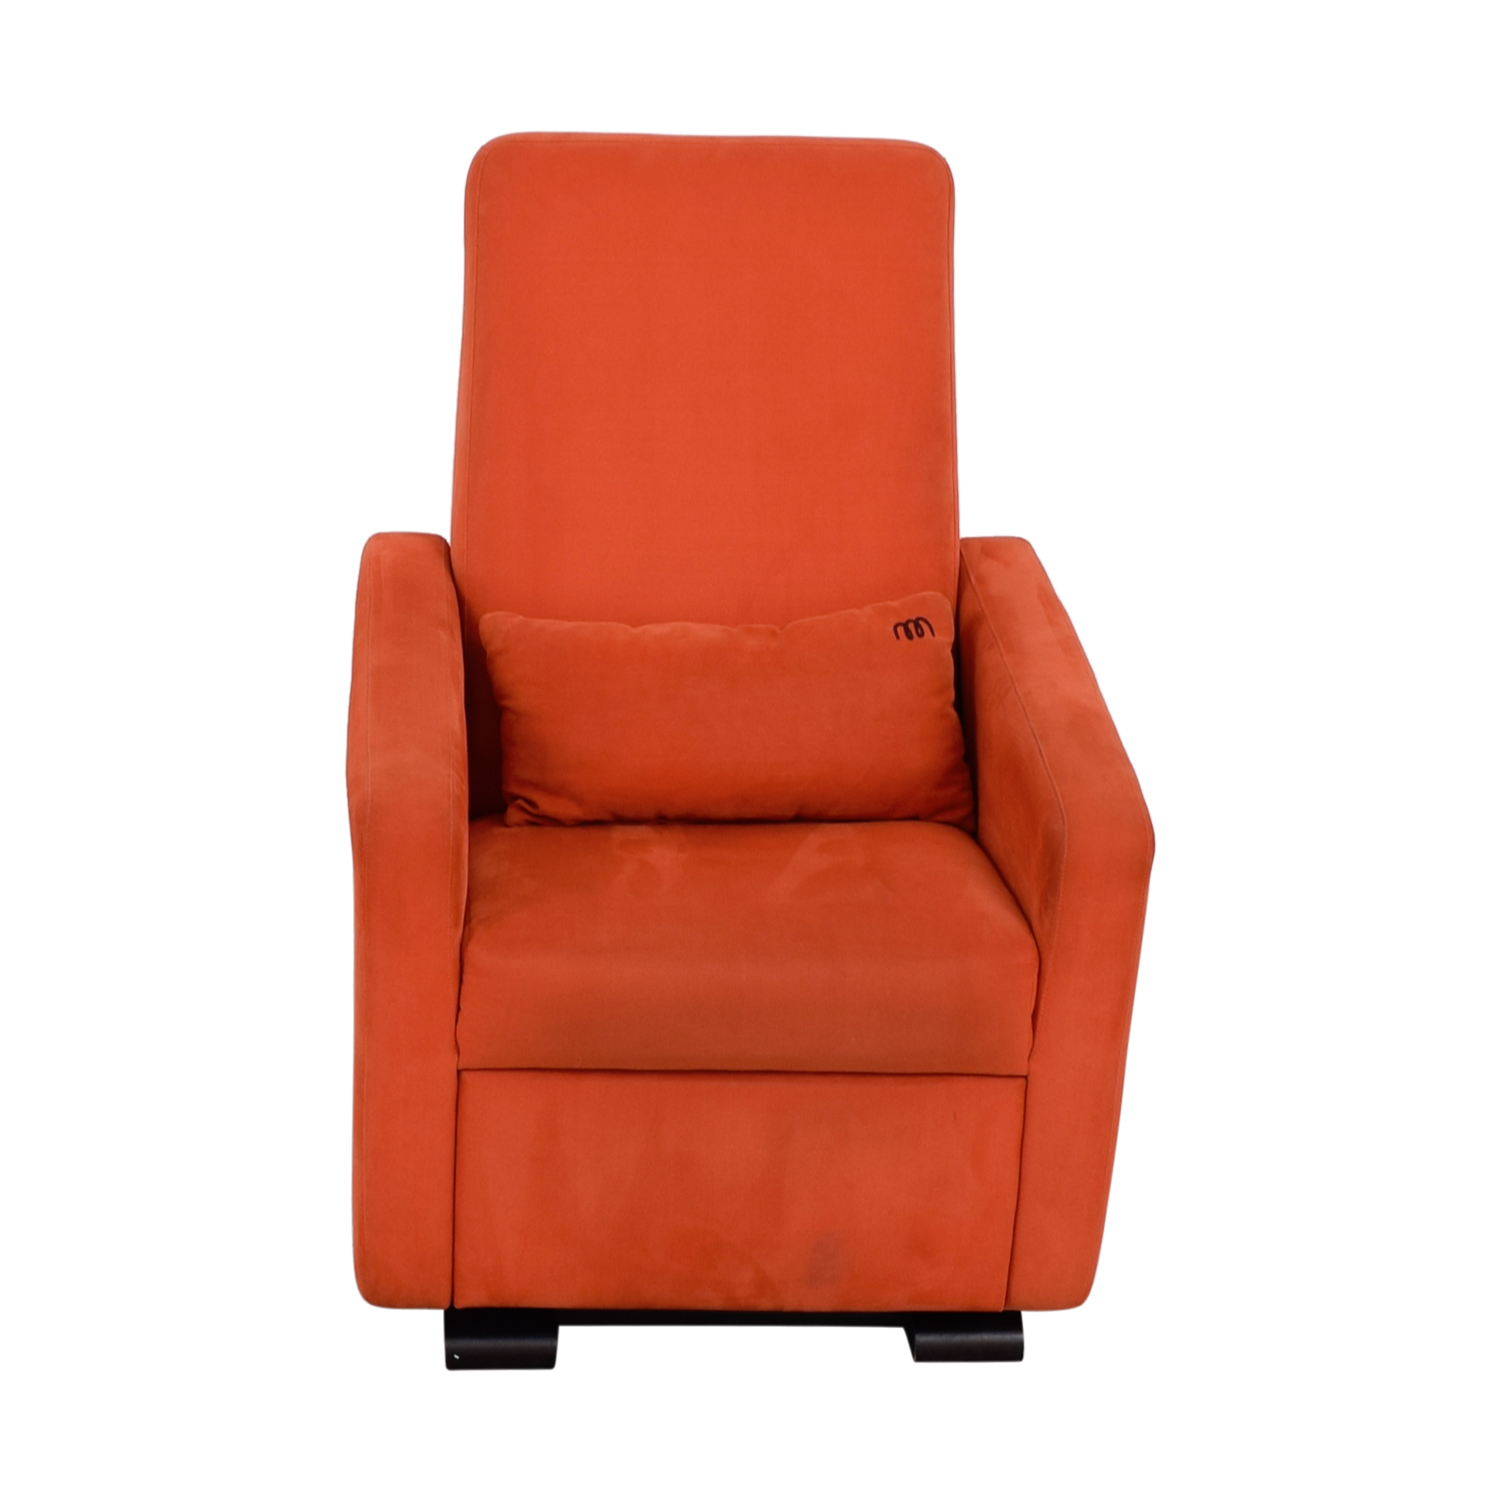 ... Monte Design Monte Design Orange Nursery Recliner Glider Price ...